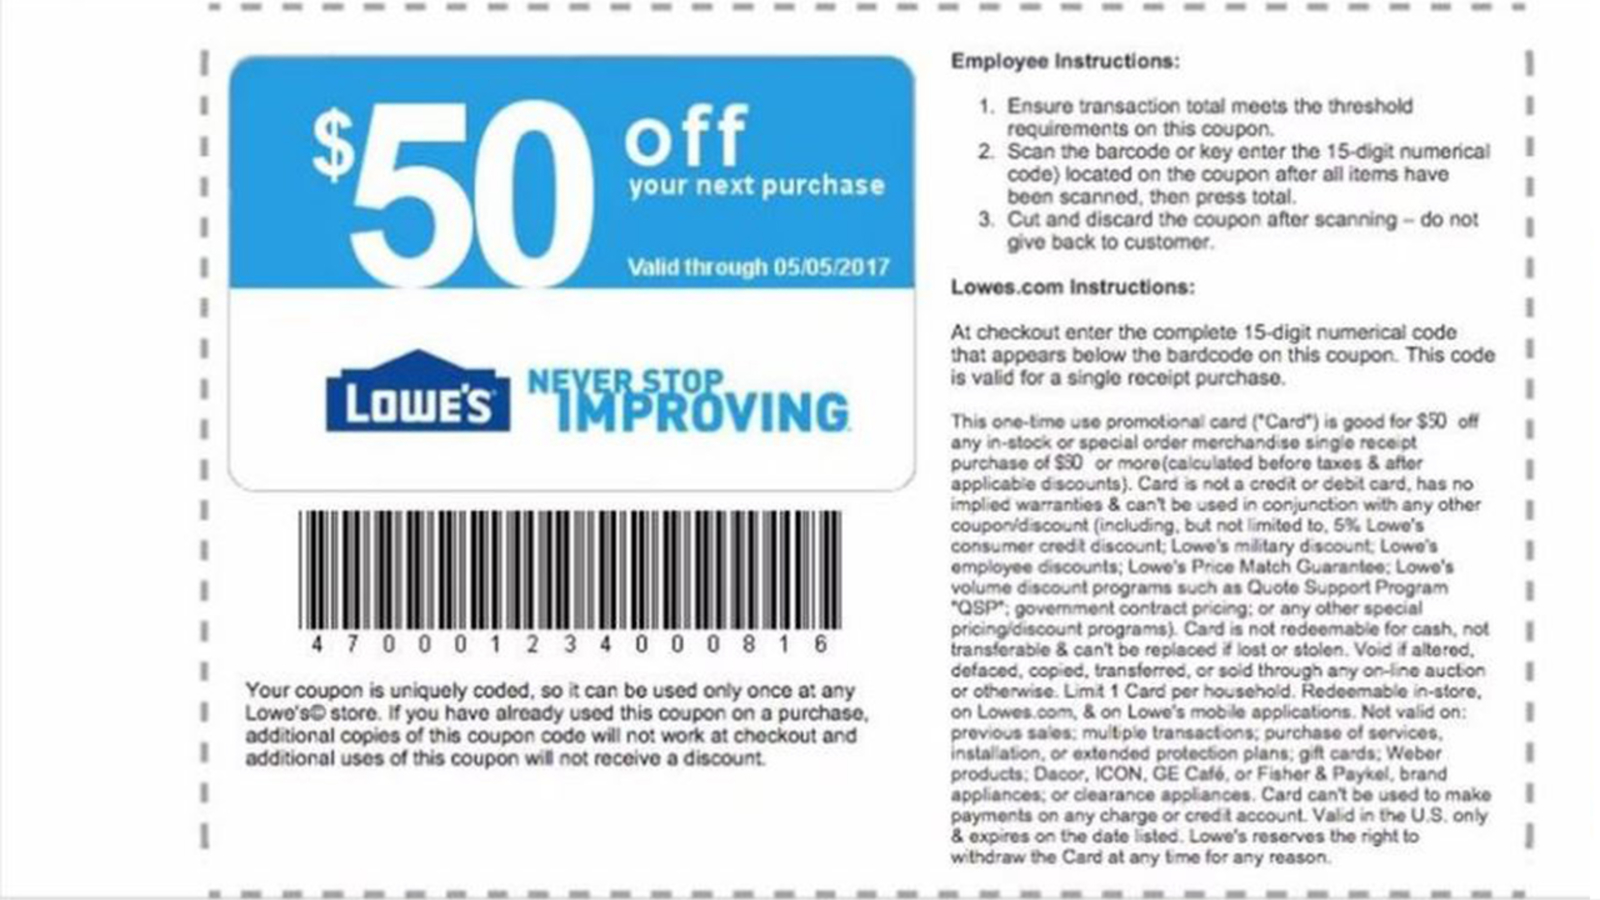 $50 Lowe's Mother's Day coupon is a scam, company says